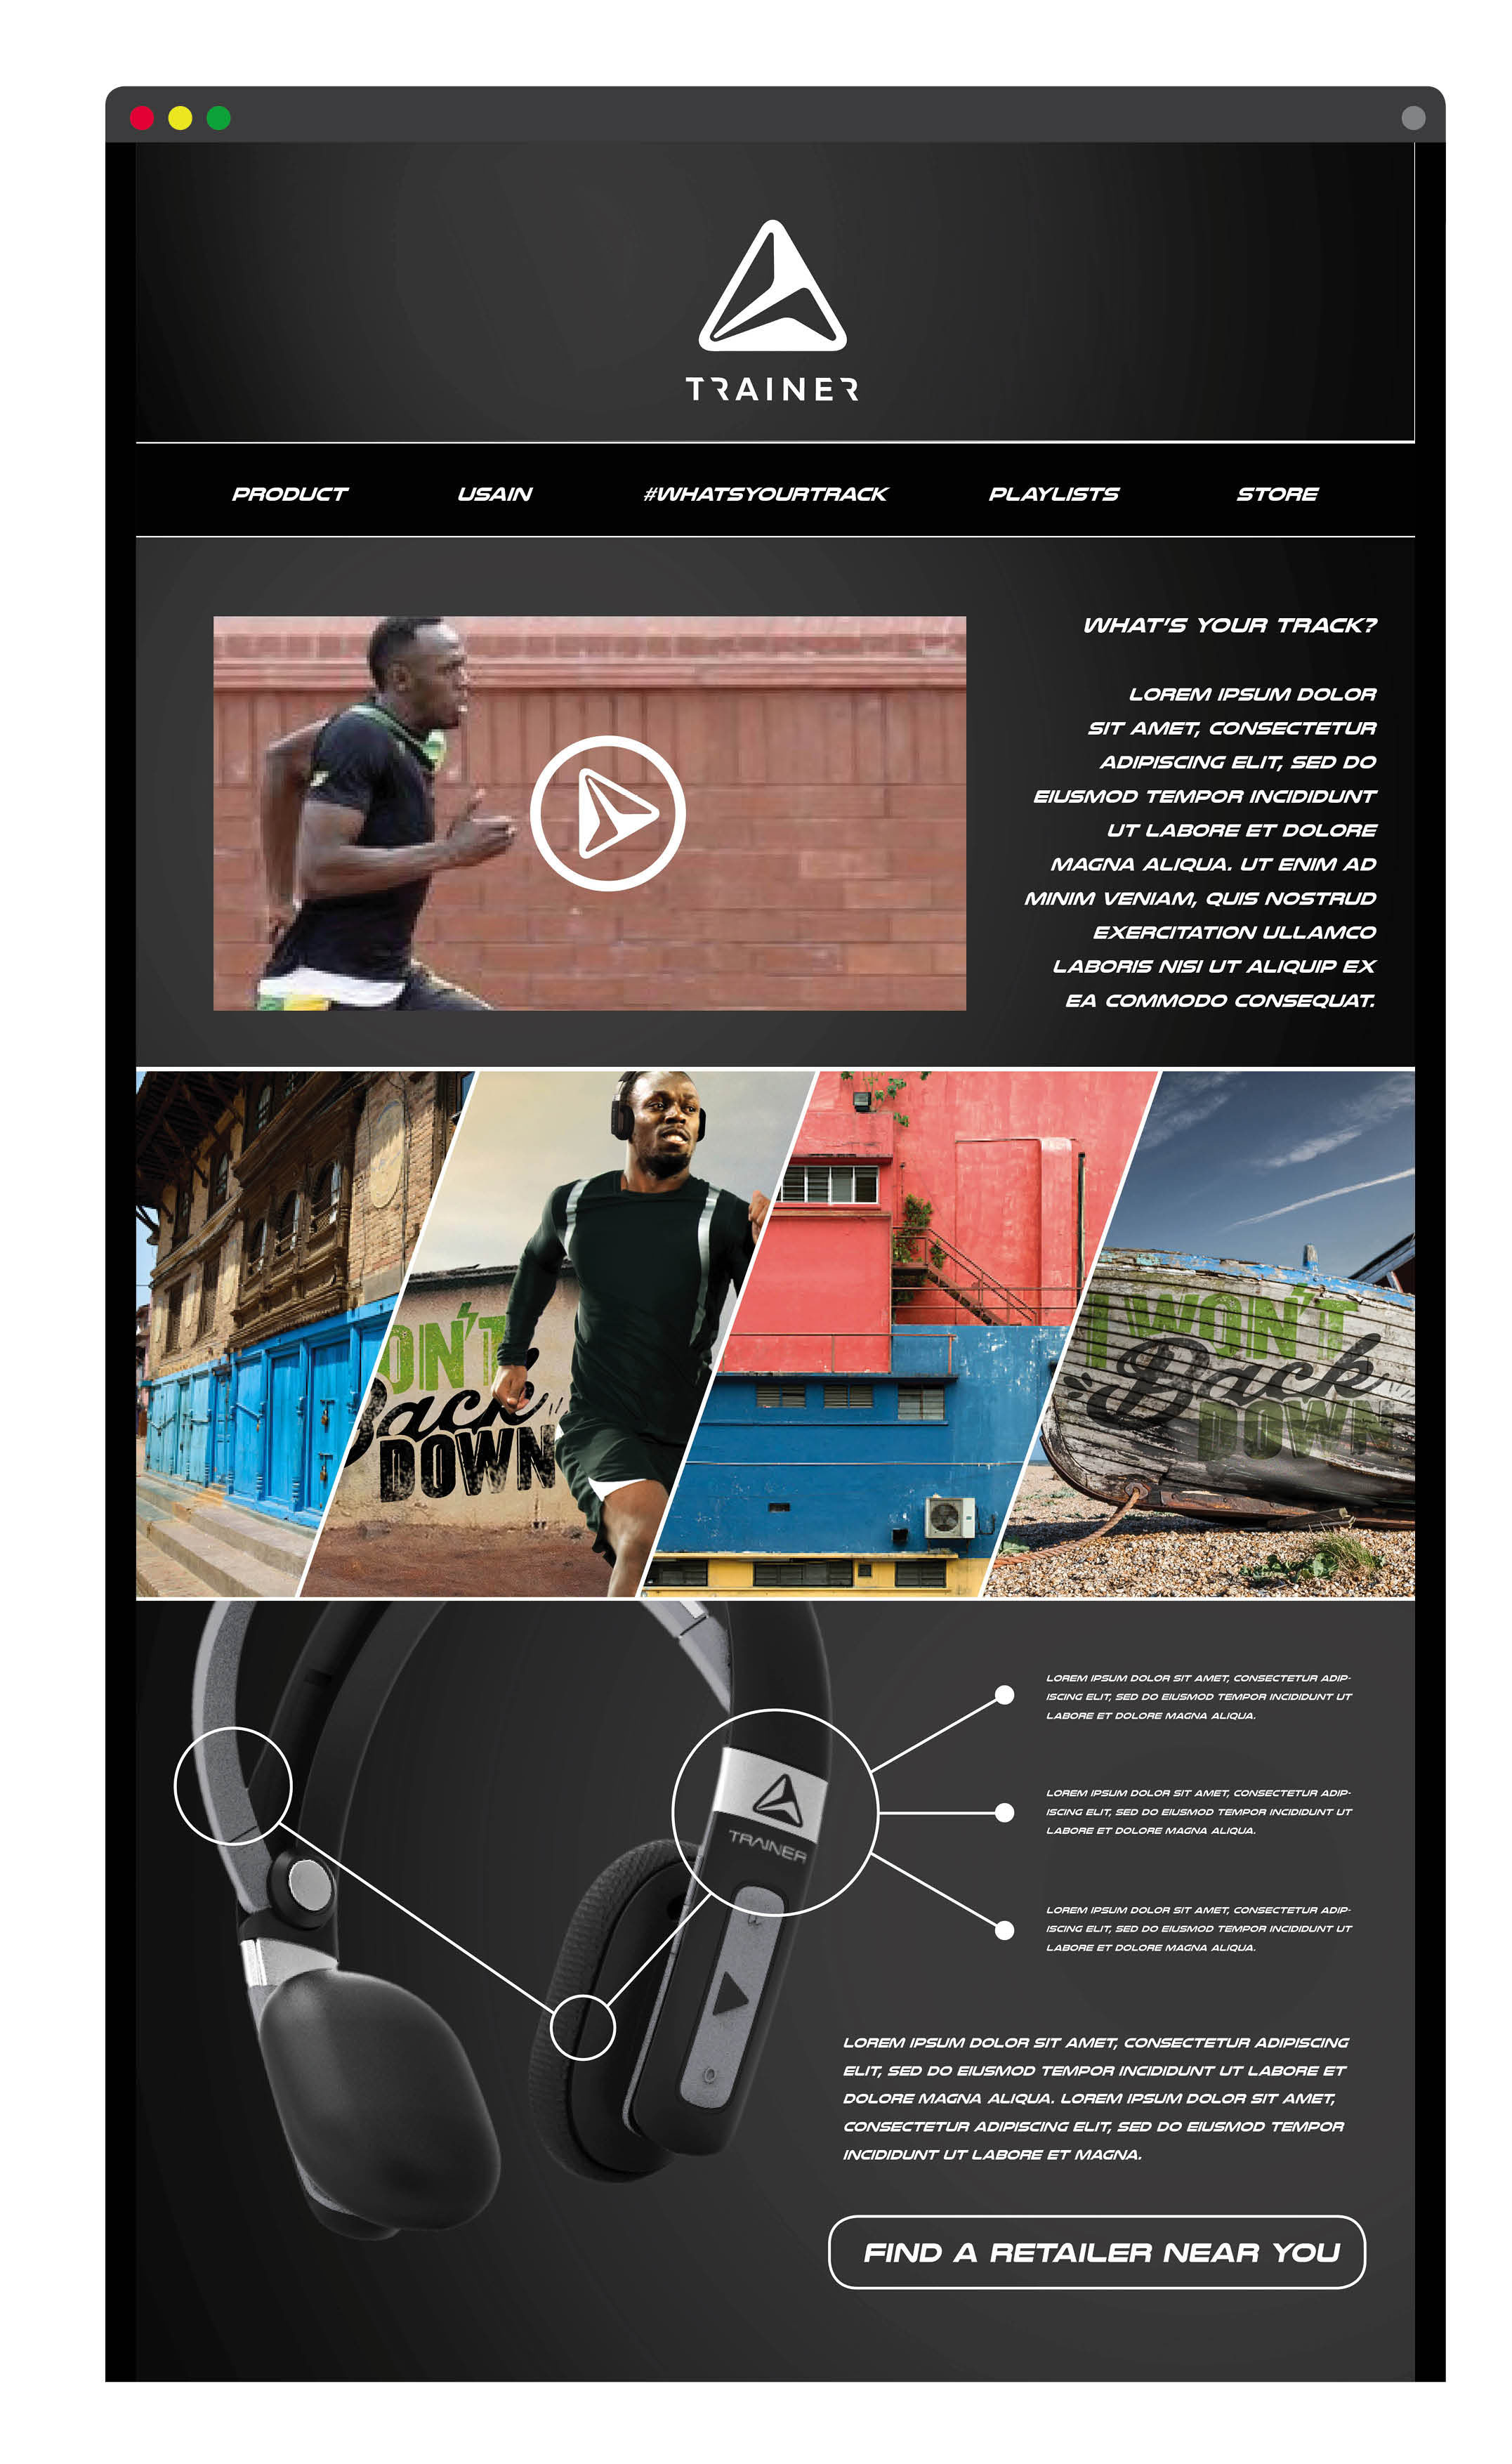 - Customers could learn more about the product and brand through interactive demos, video content showcasing Usain Bolt's training routine and preferred workout playlists.